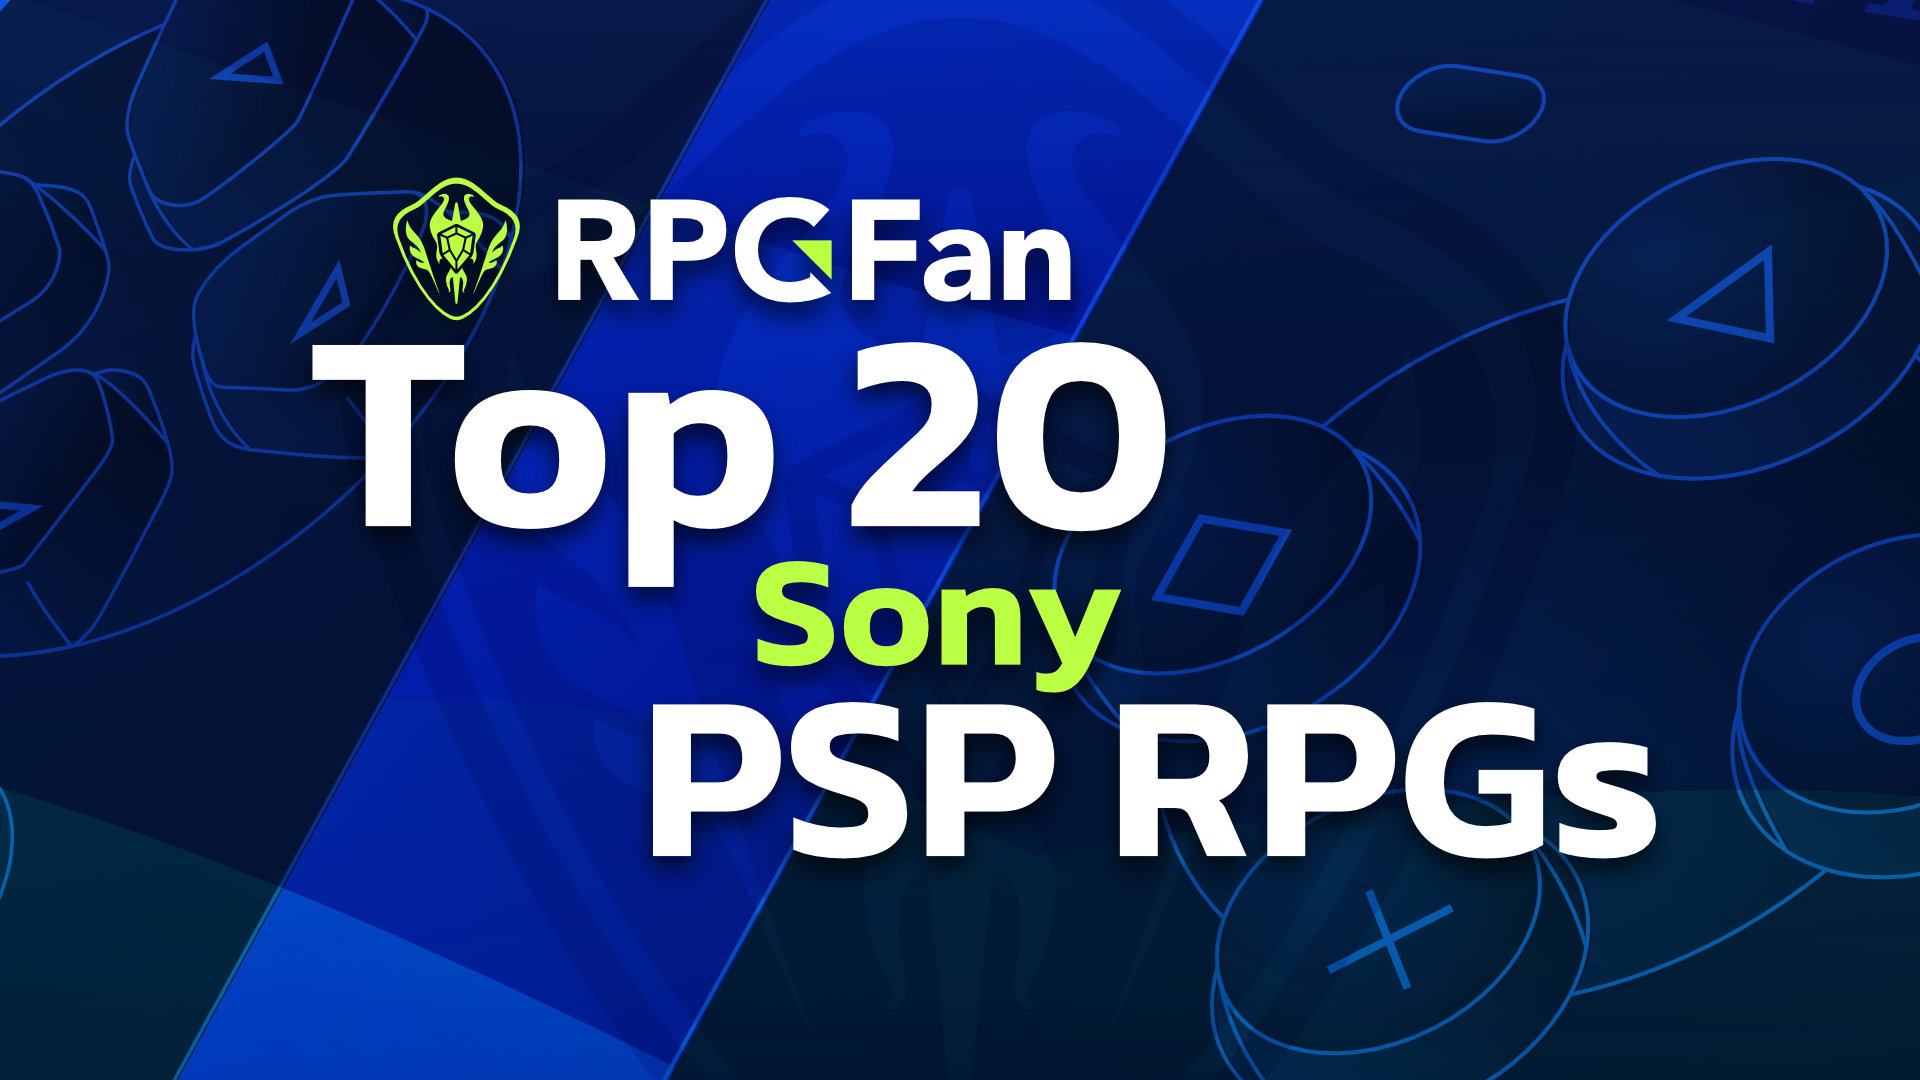 Top 20 PSP RPGs Featured